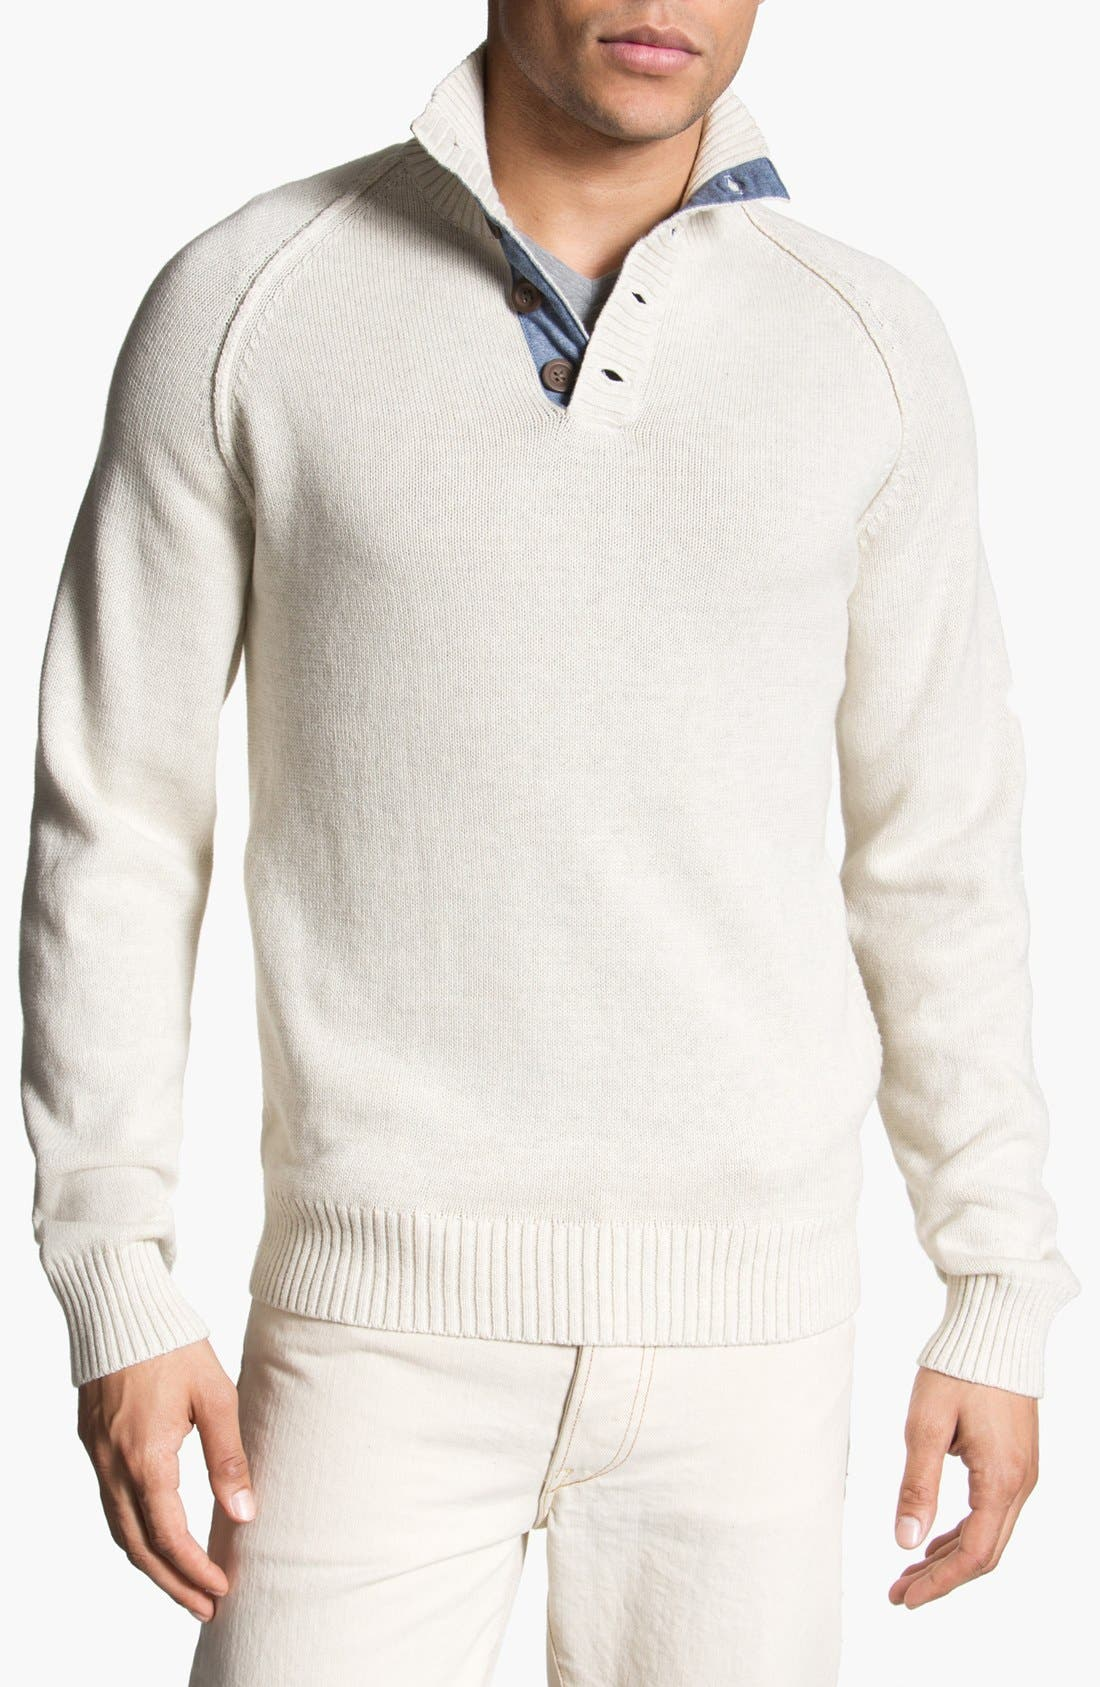 Alternate Image 1 Selected - 1901 'Pacific' Mock Neck Sweater